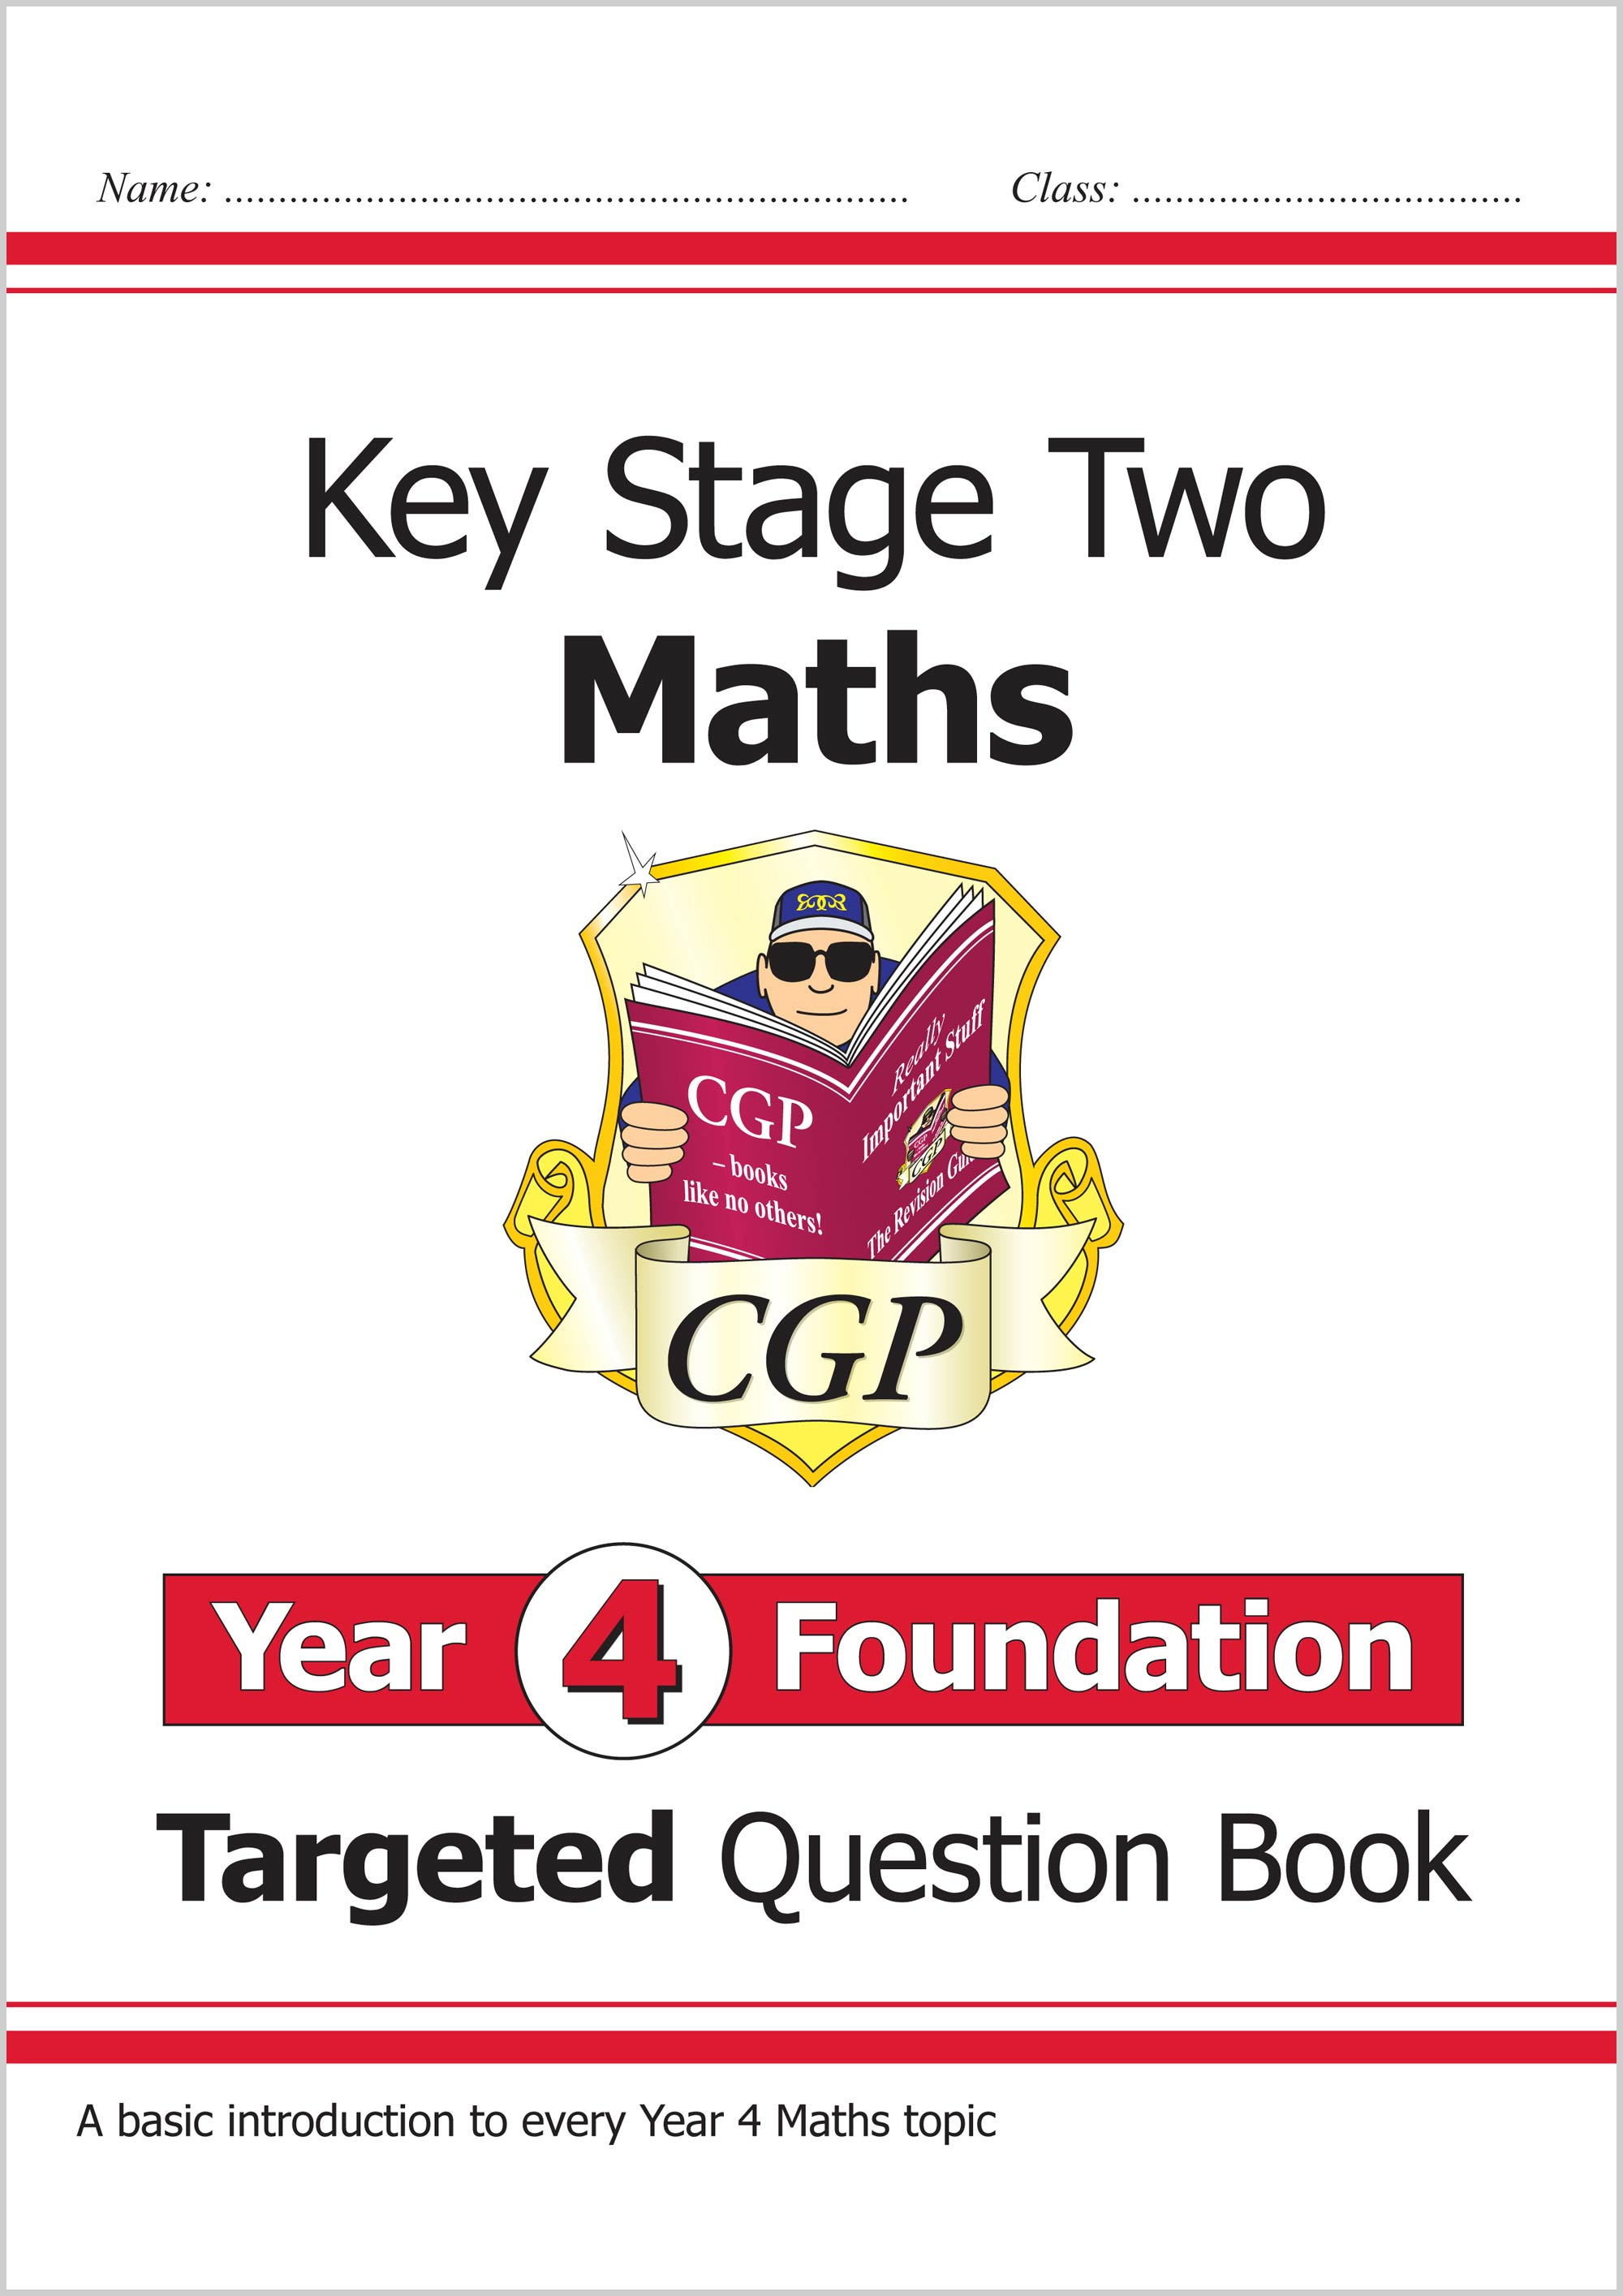 M4FQ21 - New KS2 Maths Targeted Question Book: Year 4 Foundation